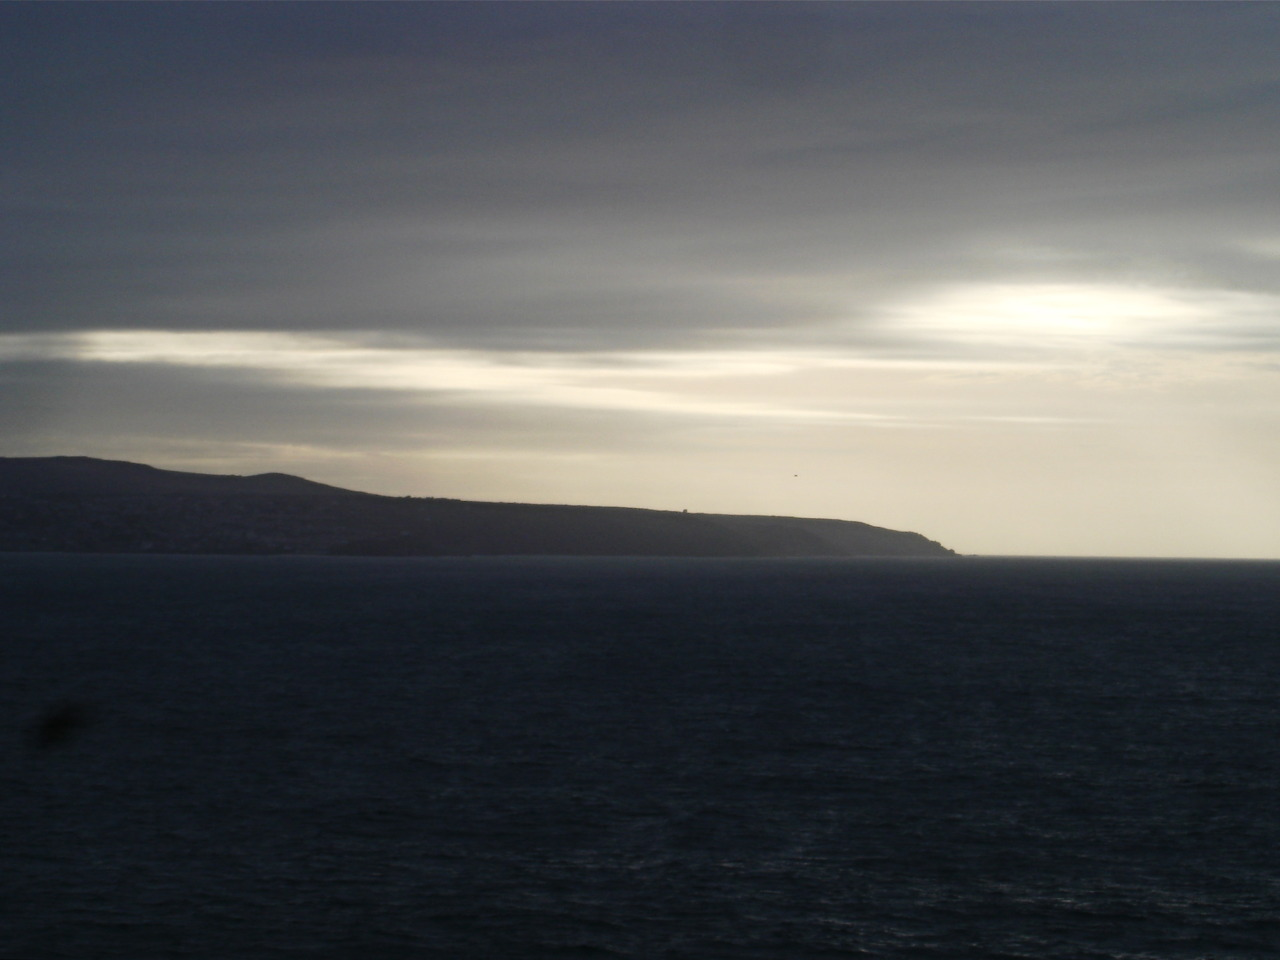 Fading light: St. Ives bay from Gwithian